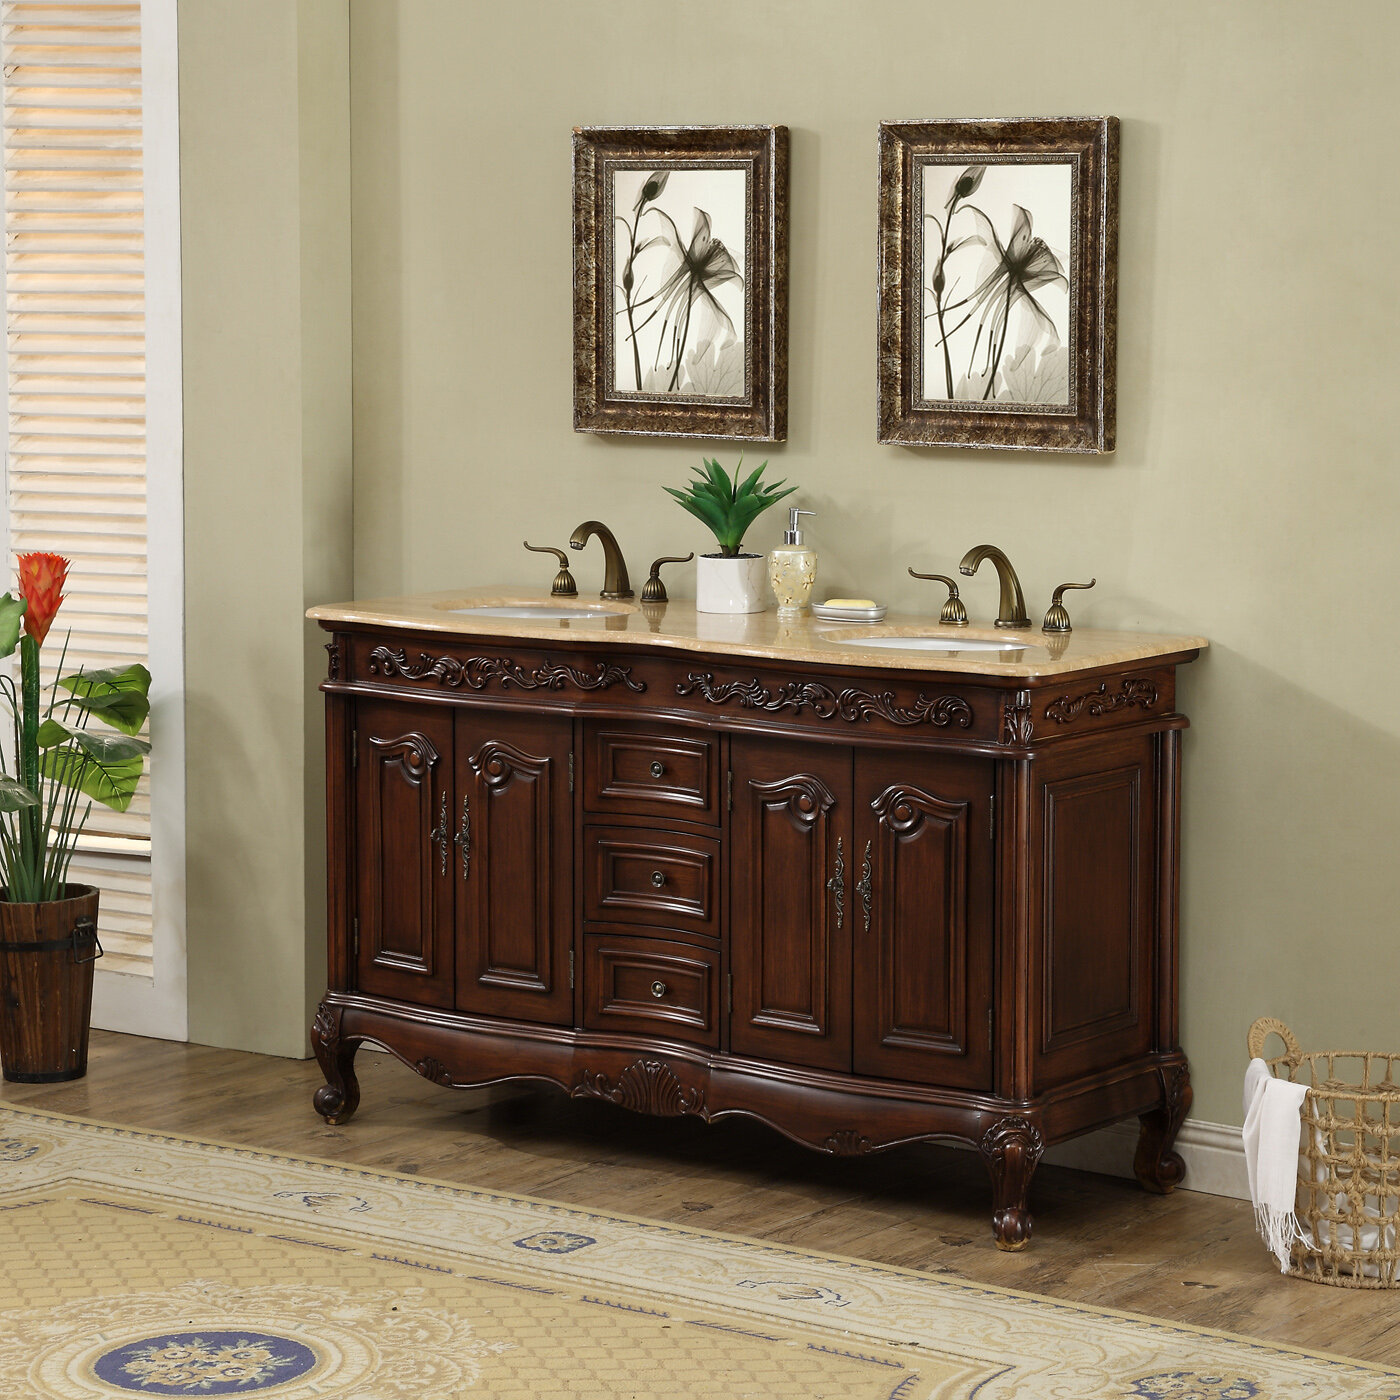 Dcor Design Saturn 60 Double Bathroom Vanity Set